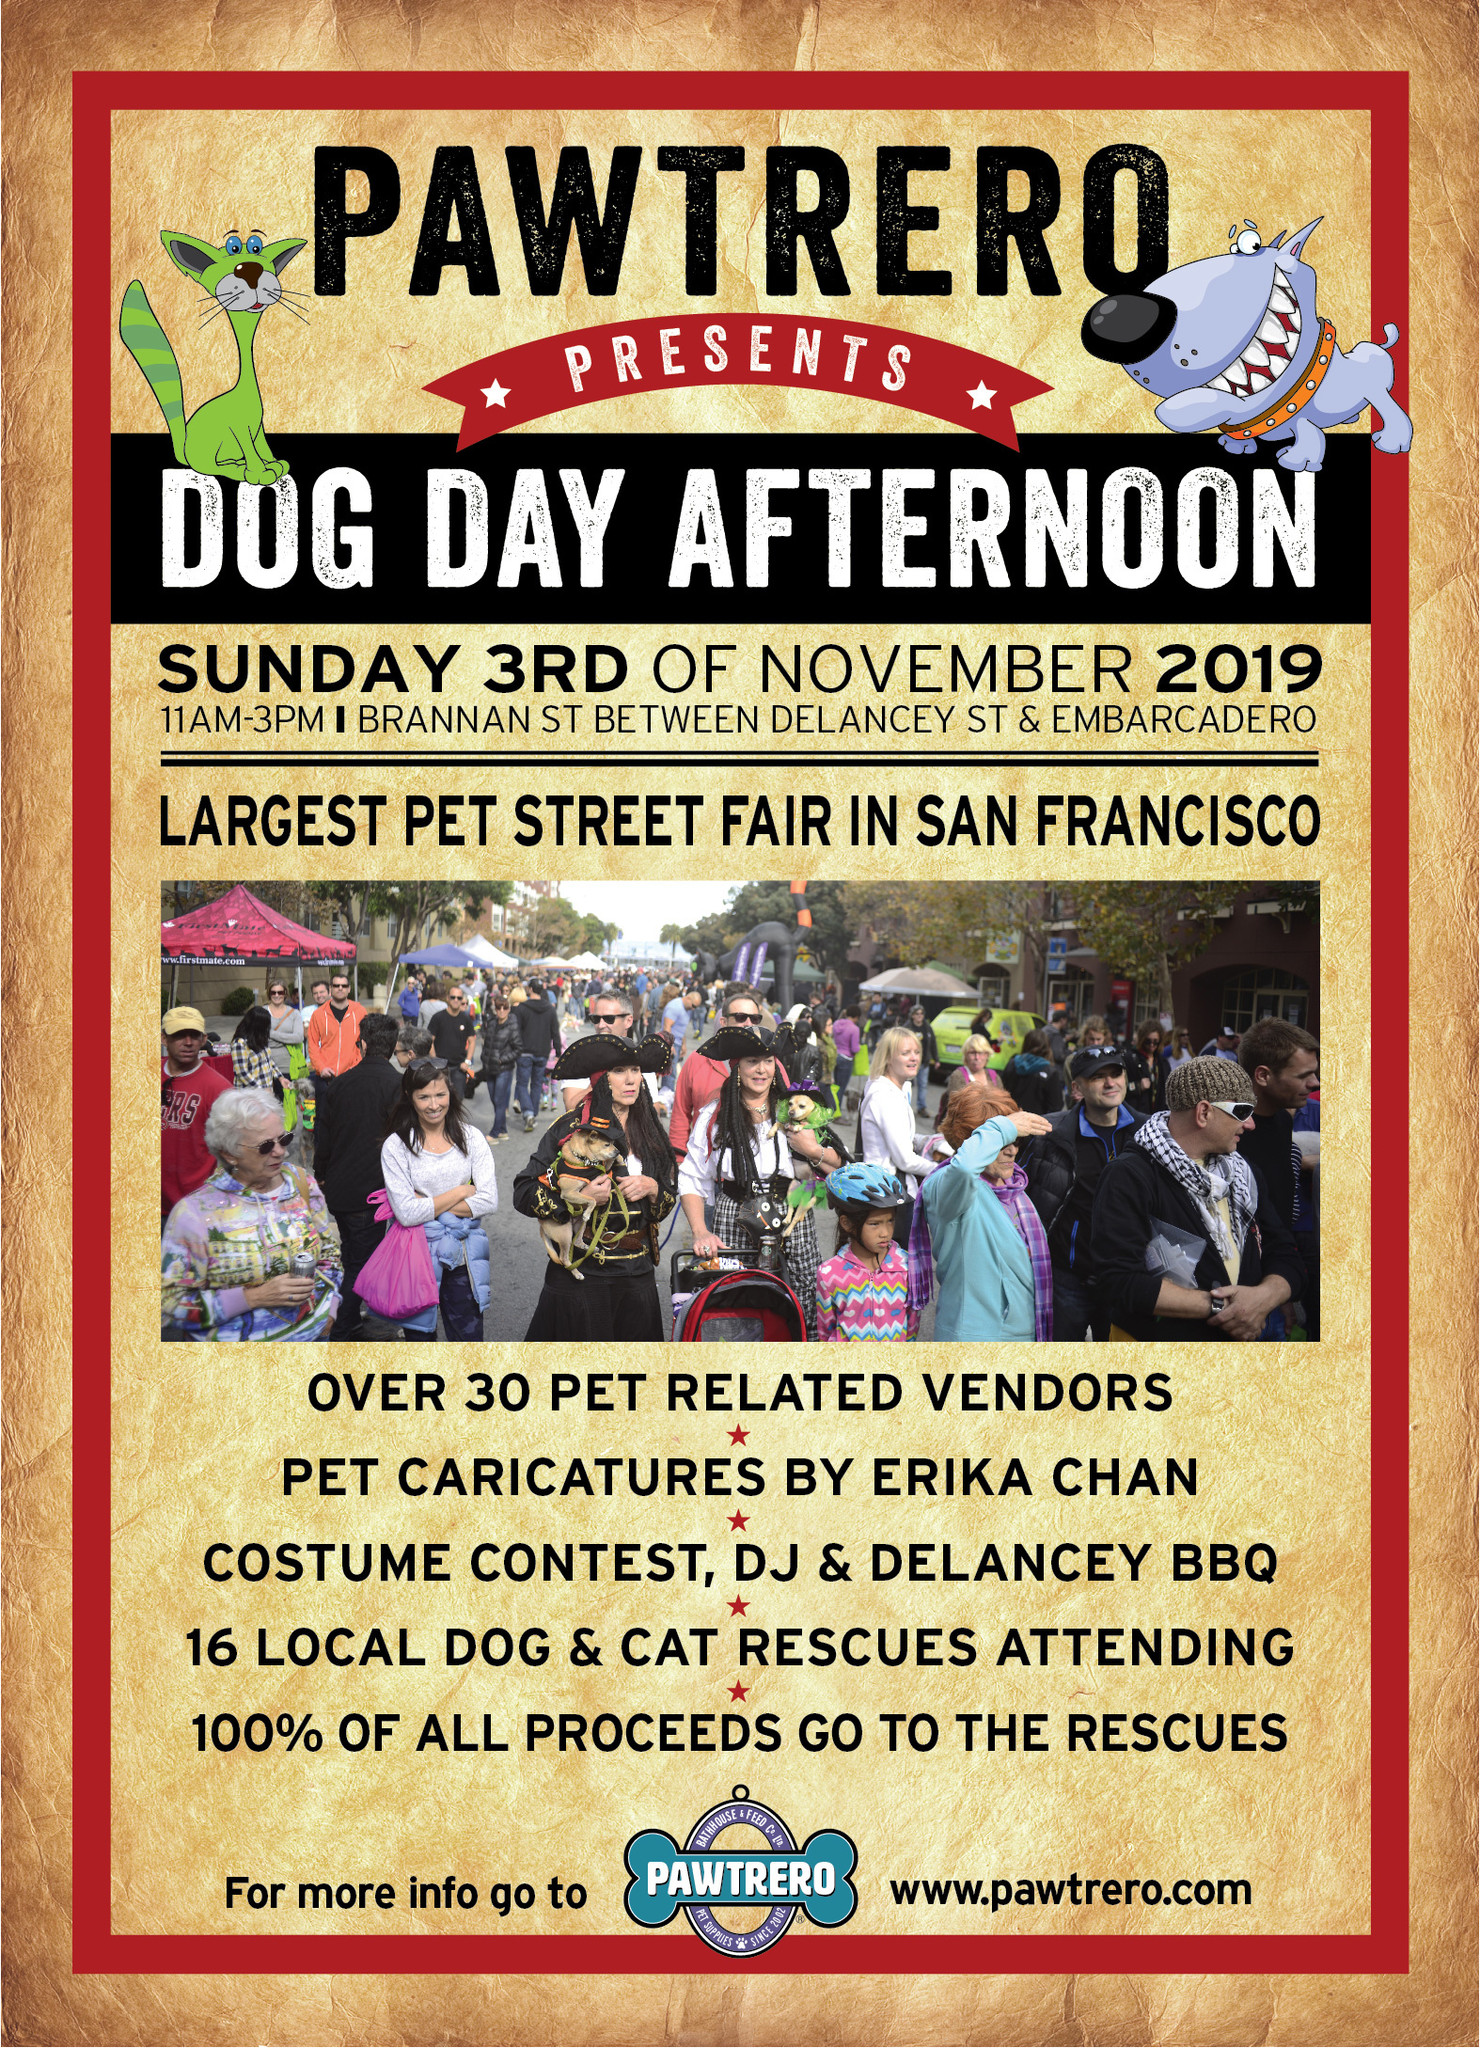 Pawtrero's Dog Day Afternoon! @ Brannan Street (between Delancey and the Embarcadero) in front of Pawtrero